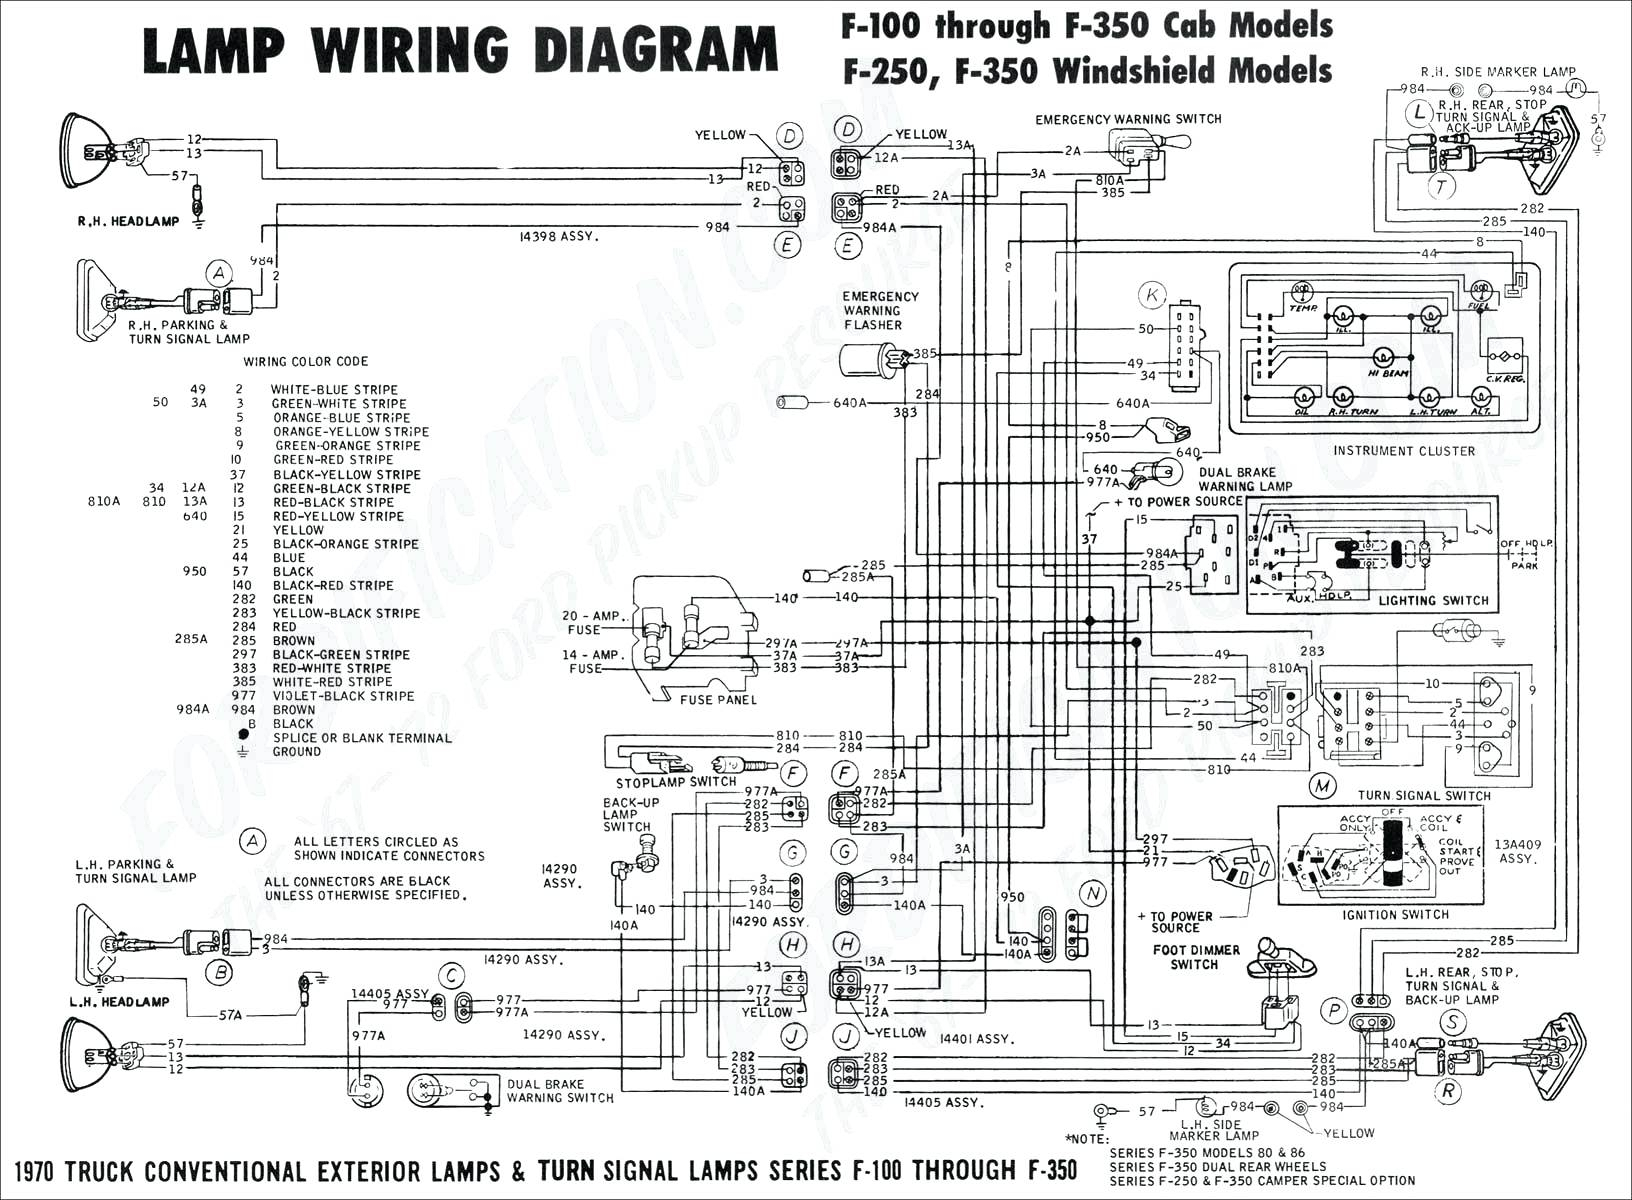 eaton c25bnb230a wiring diagram Collection-Hkfz Wiring Diagram Sample Wiring Diagram Sample Eaton c25bnb230a wiring diagram 12-h